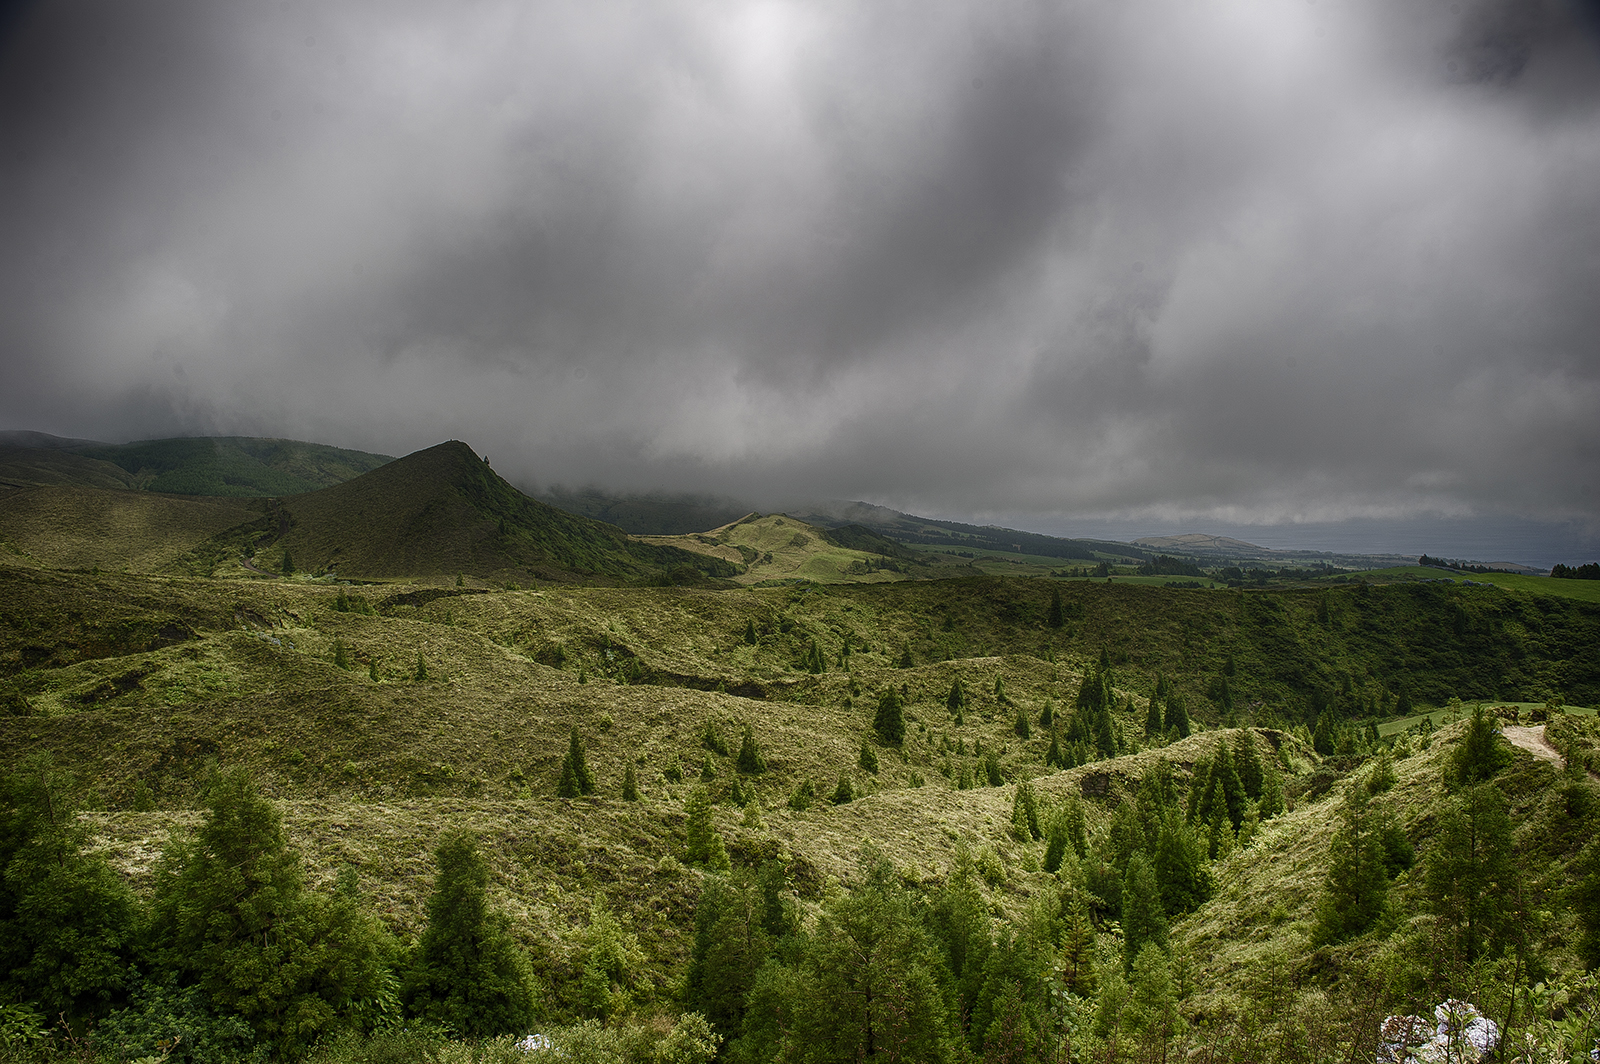 panorama of Sao Miguel, Azores